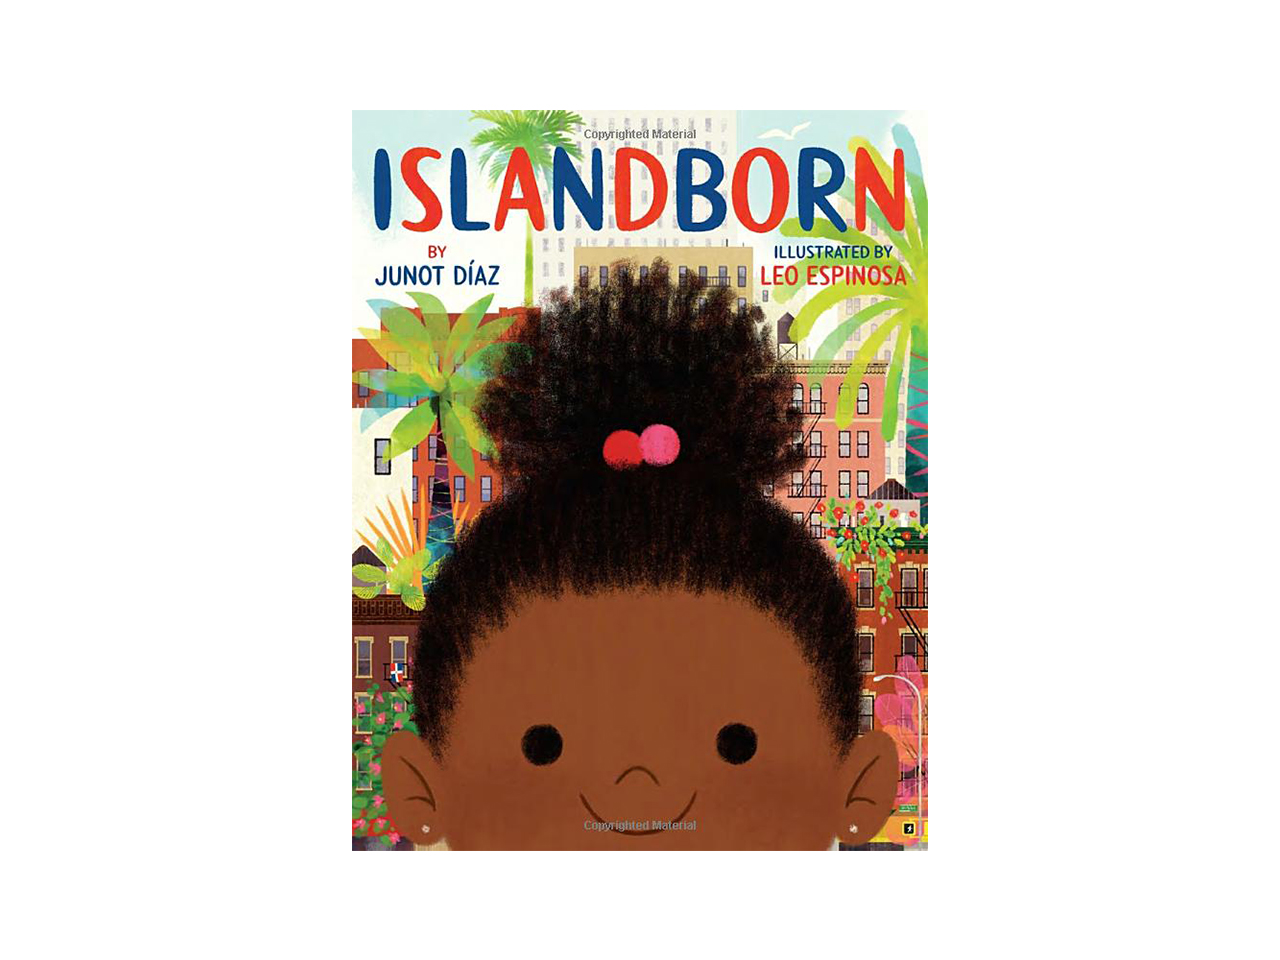 Cover art for Islandborn showing an illustrated girl's face in front of a city with lush jungle trees